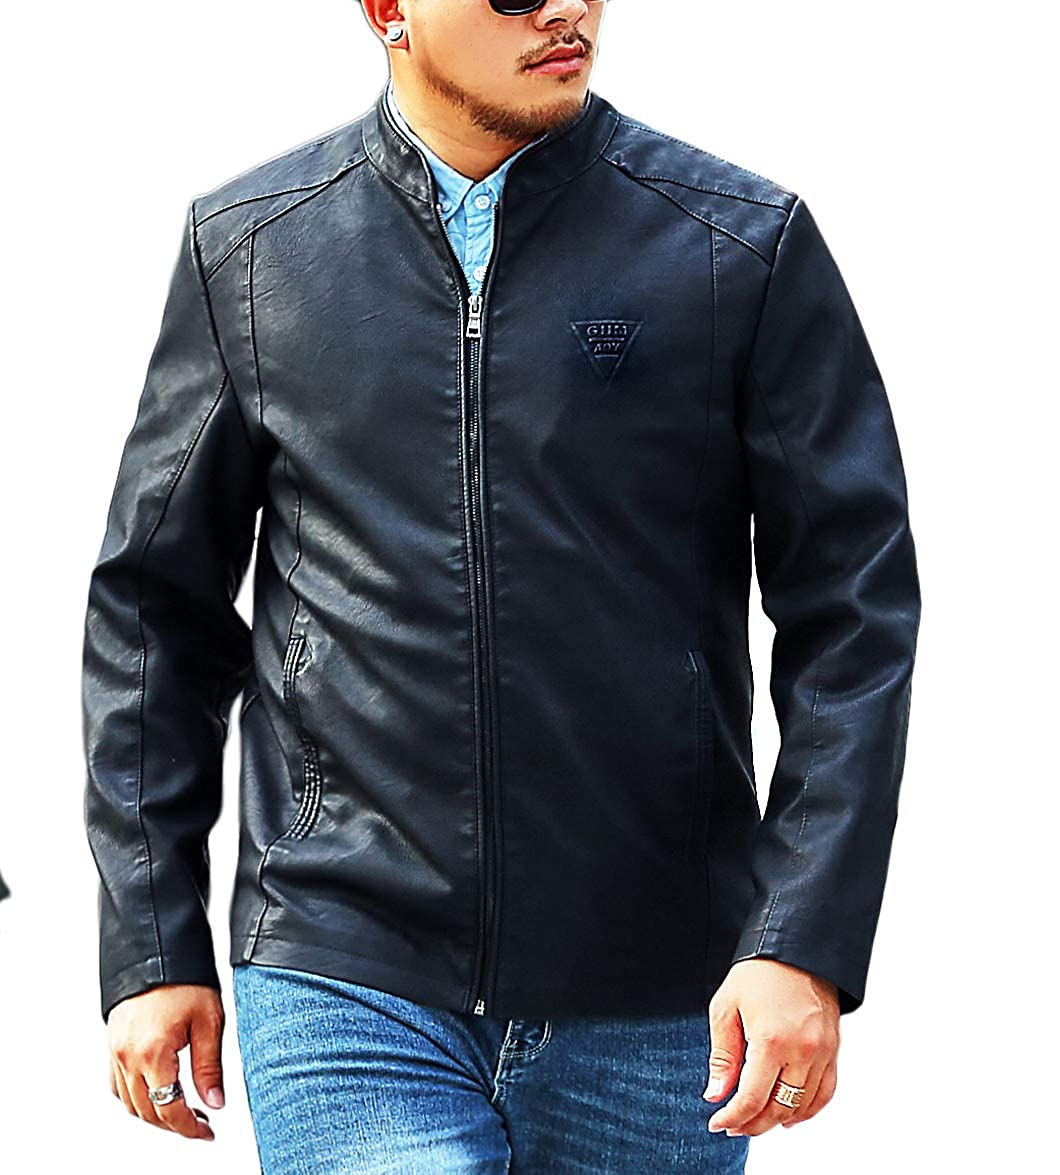 bcb5de120bd2 LIERDAR Men s Casual Zip-Up Faux Leather Jacket Outfit at Amazon Men s  Clothing store